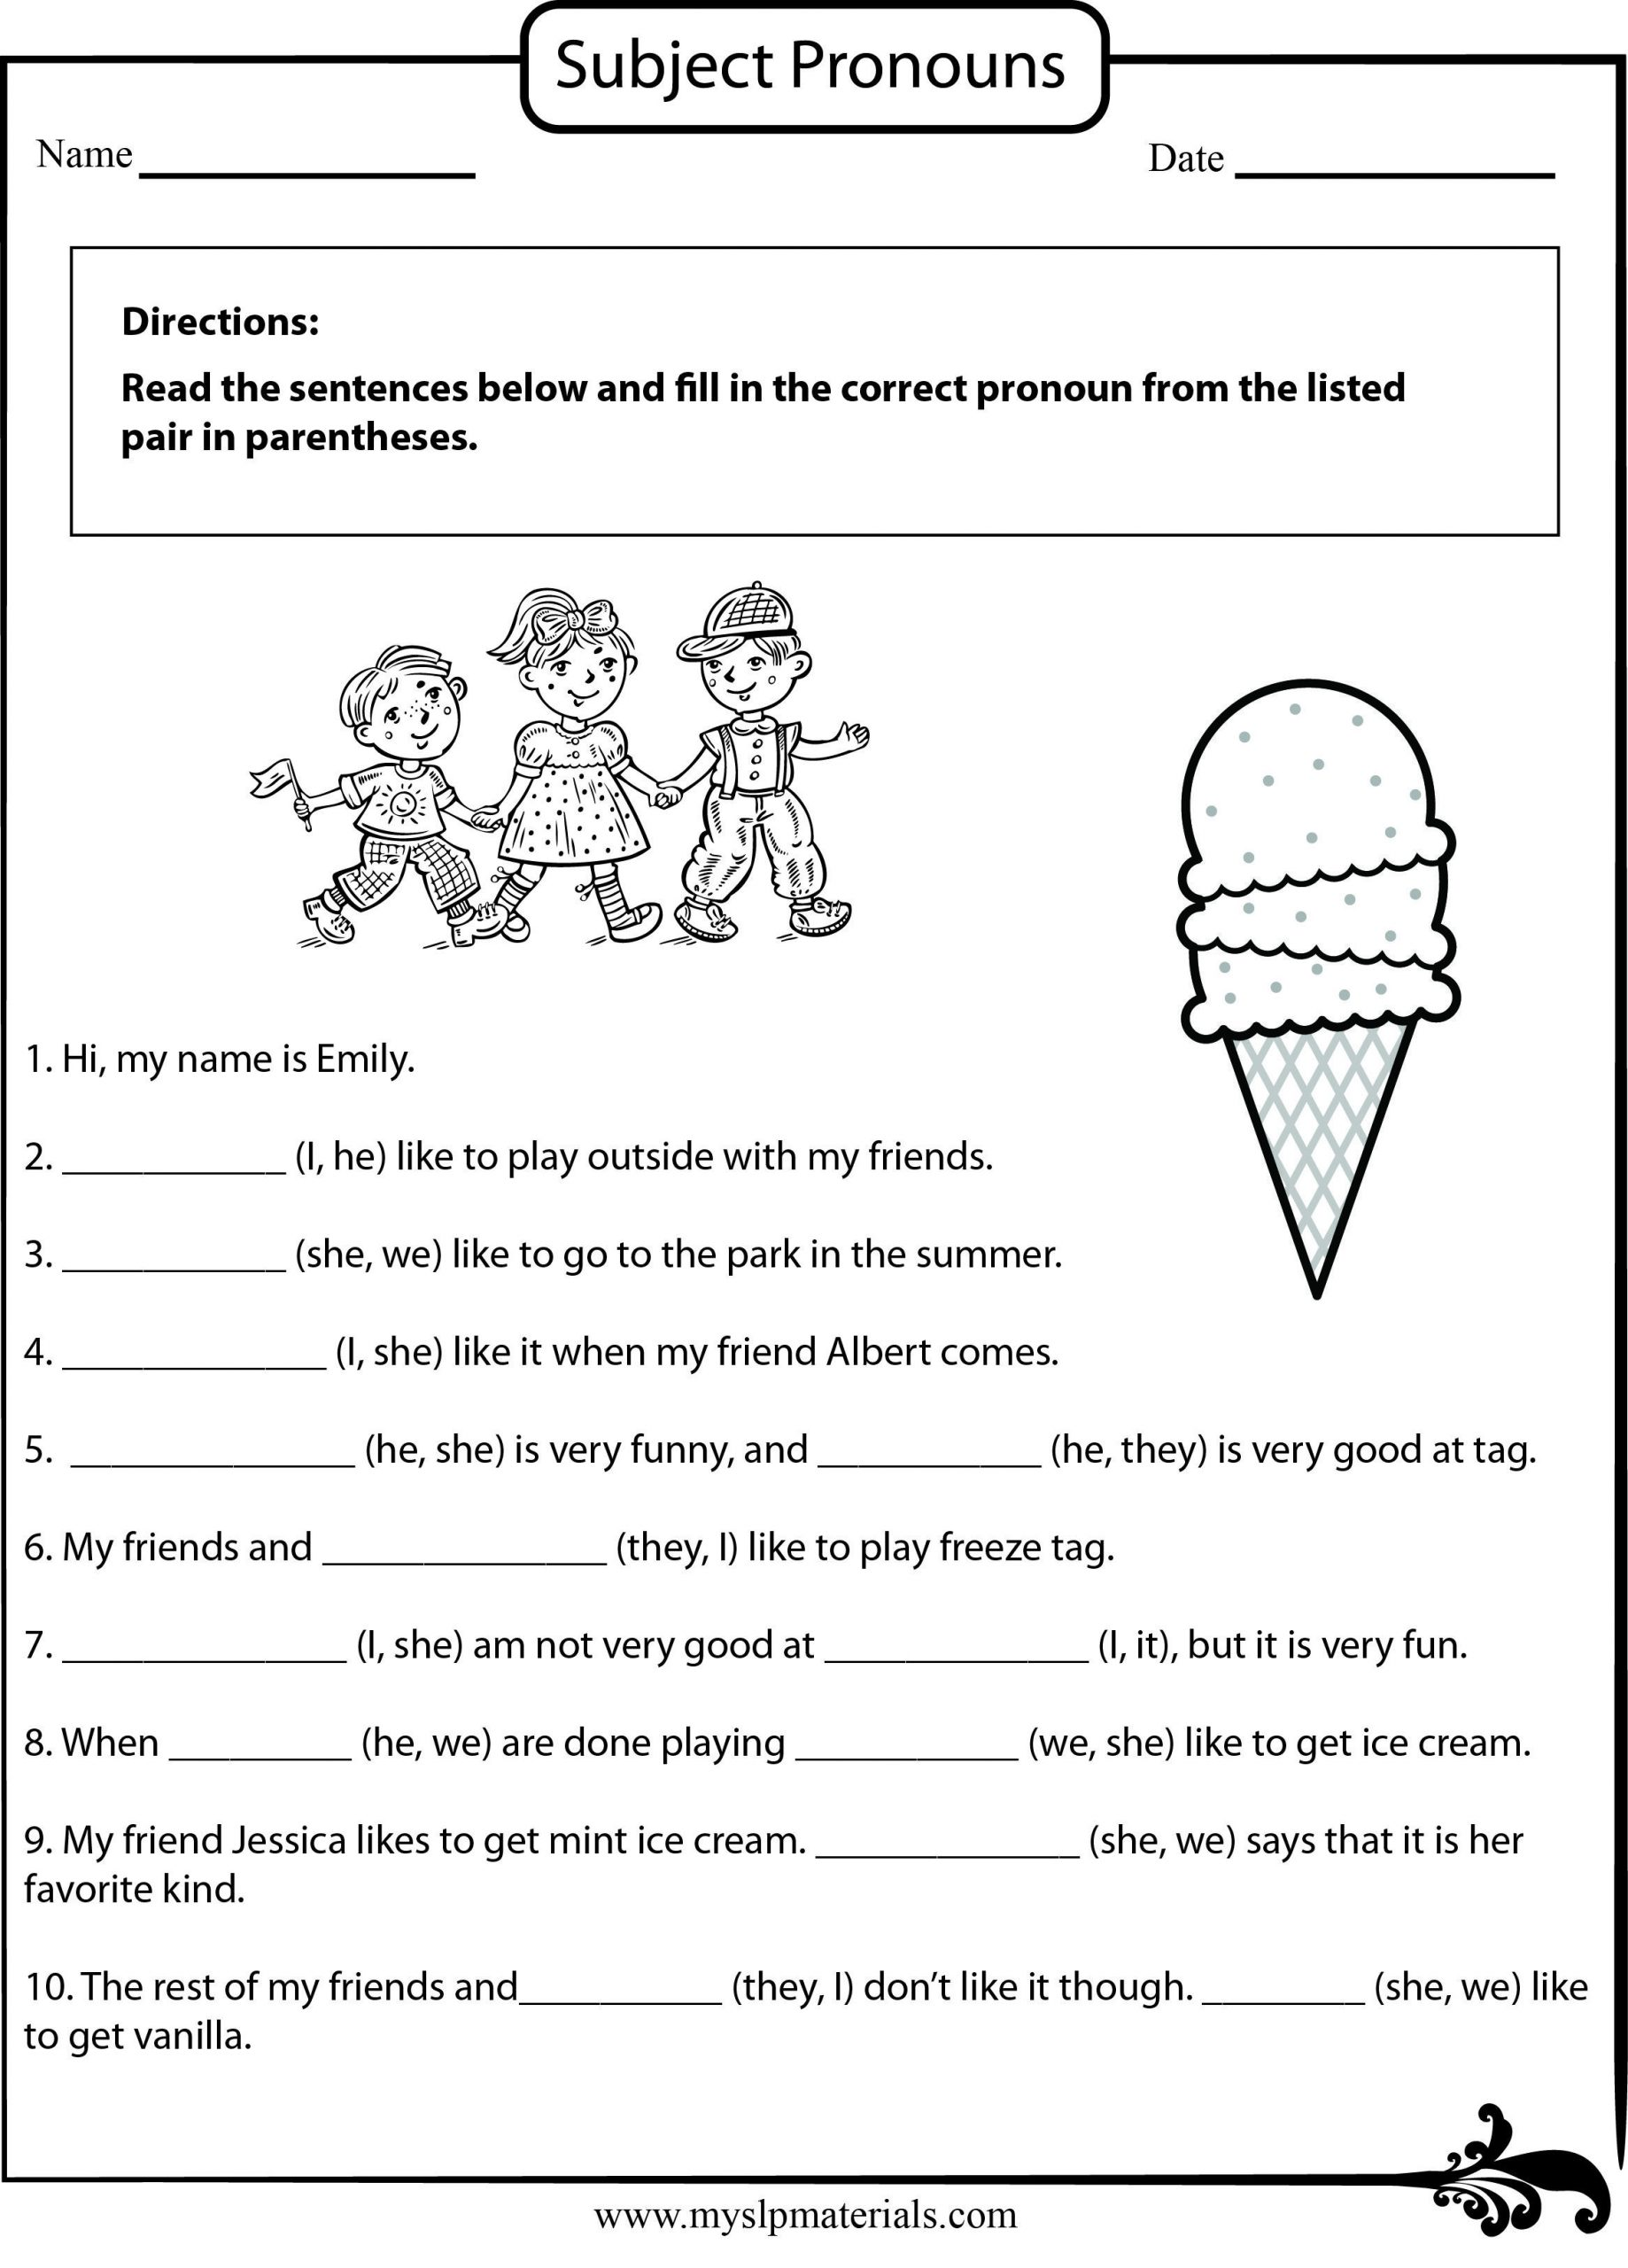 Landform Worksheets for 2nd Grade Subject Pronoun Speech